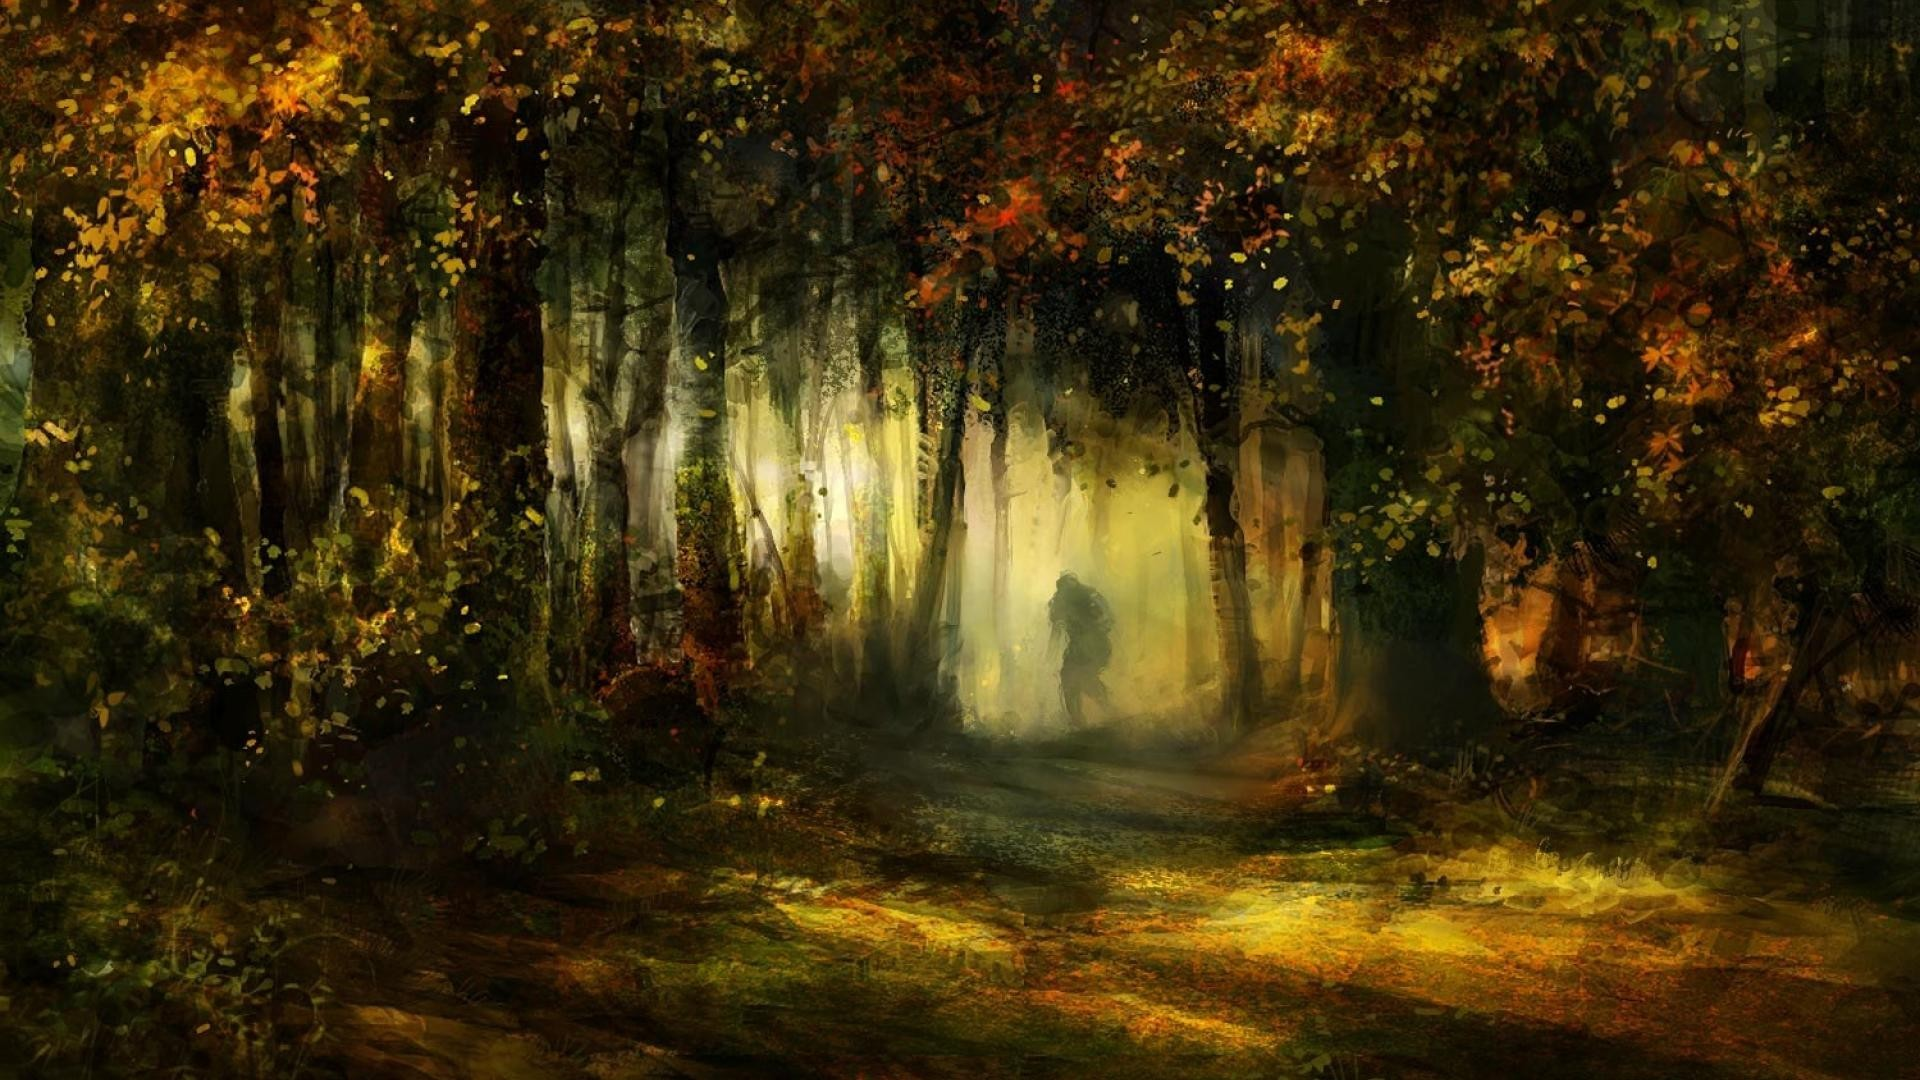 Human Tag – Human Deep Mystic Forest Art Tree Nature Mist Fantasy Awesome  Artwork HD Backgrounds